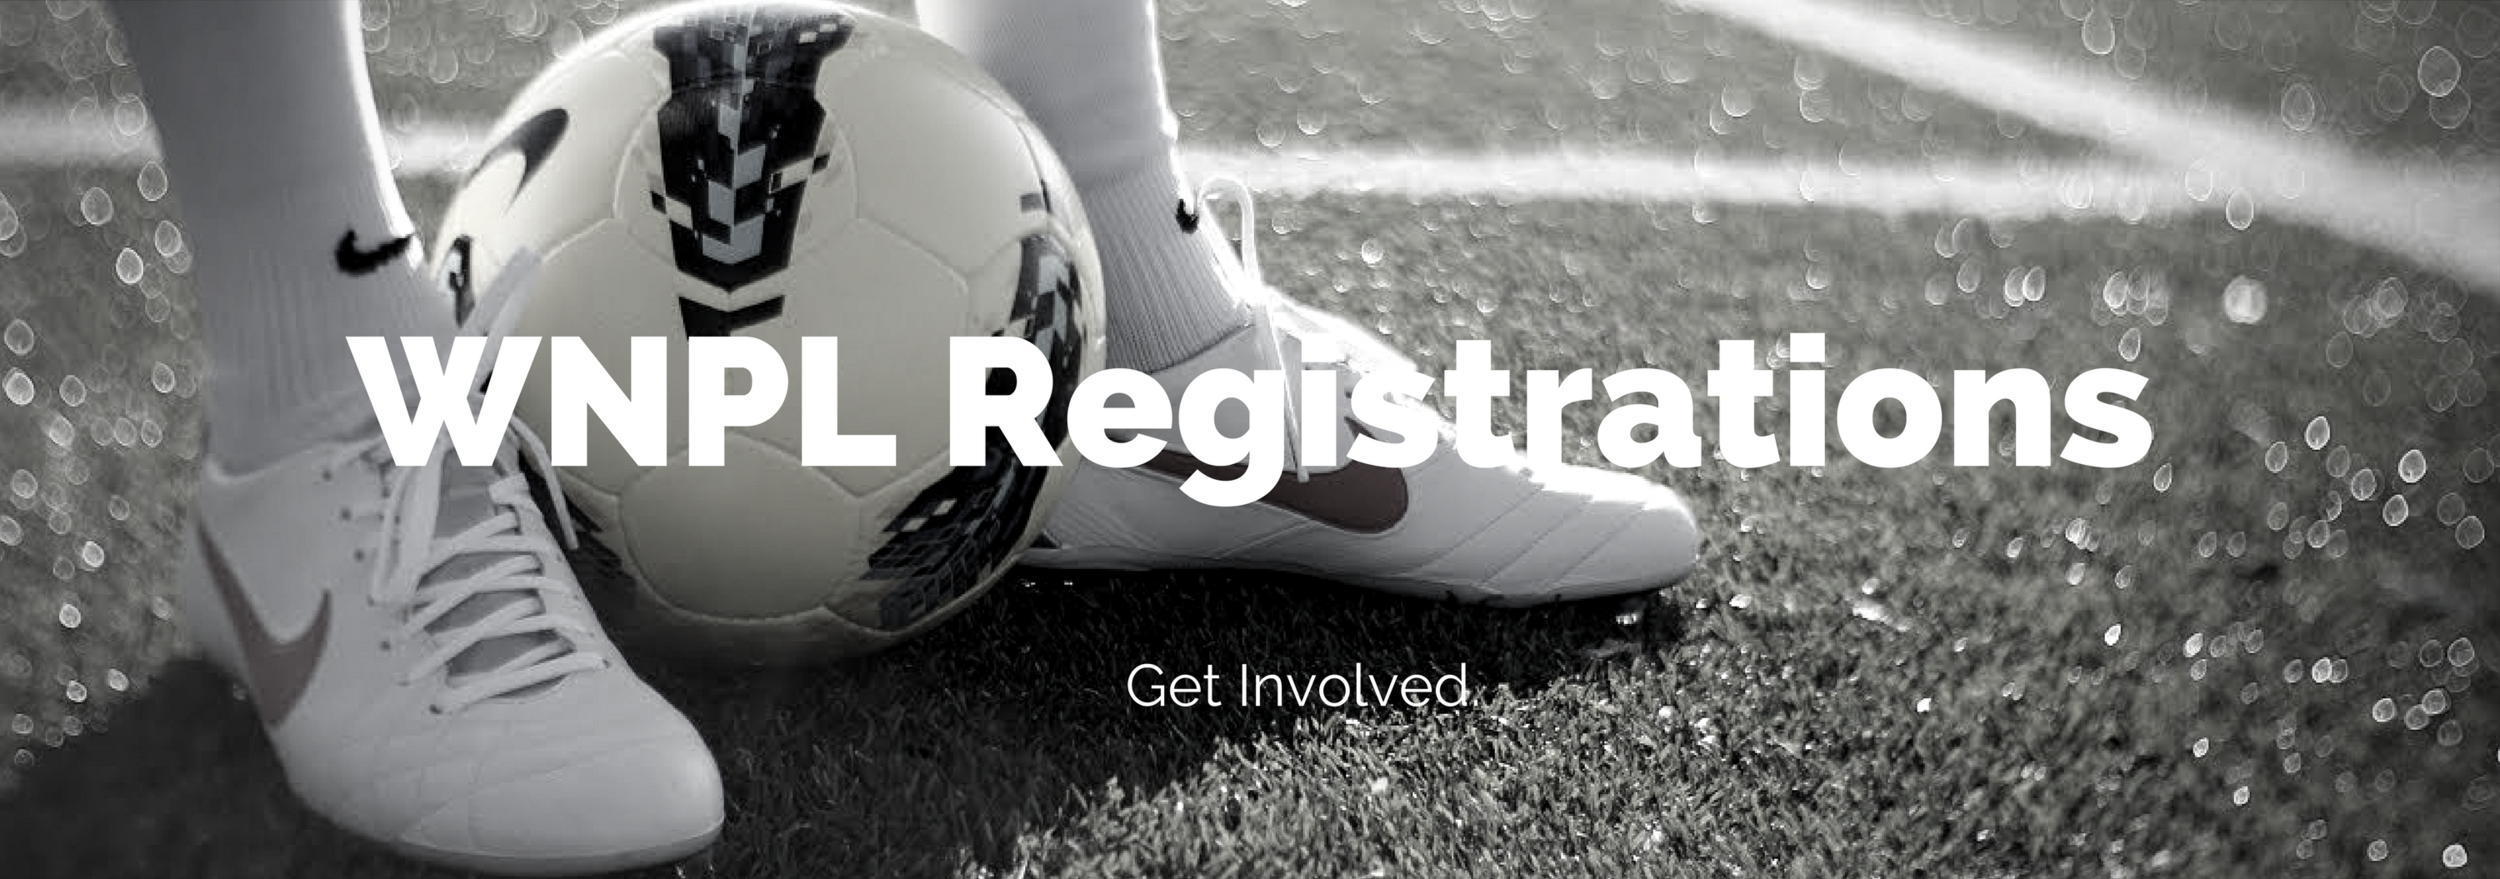 WNPL Registrations.png